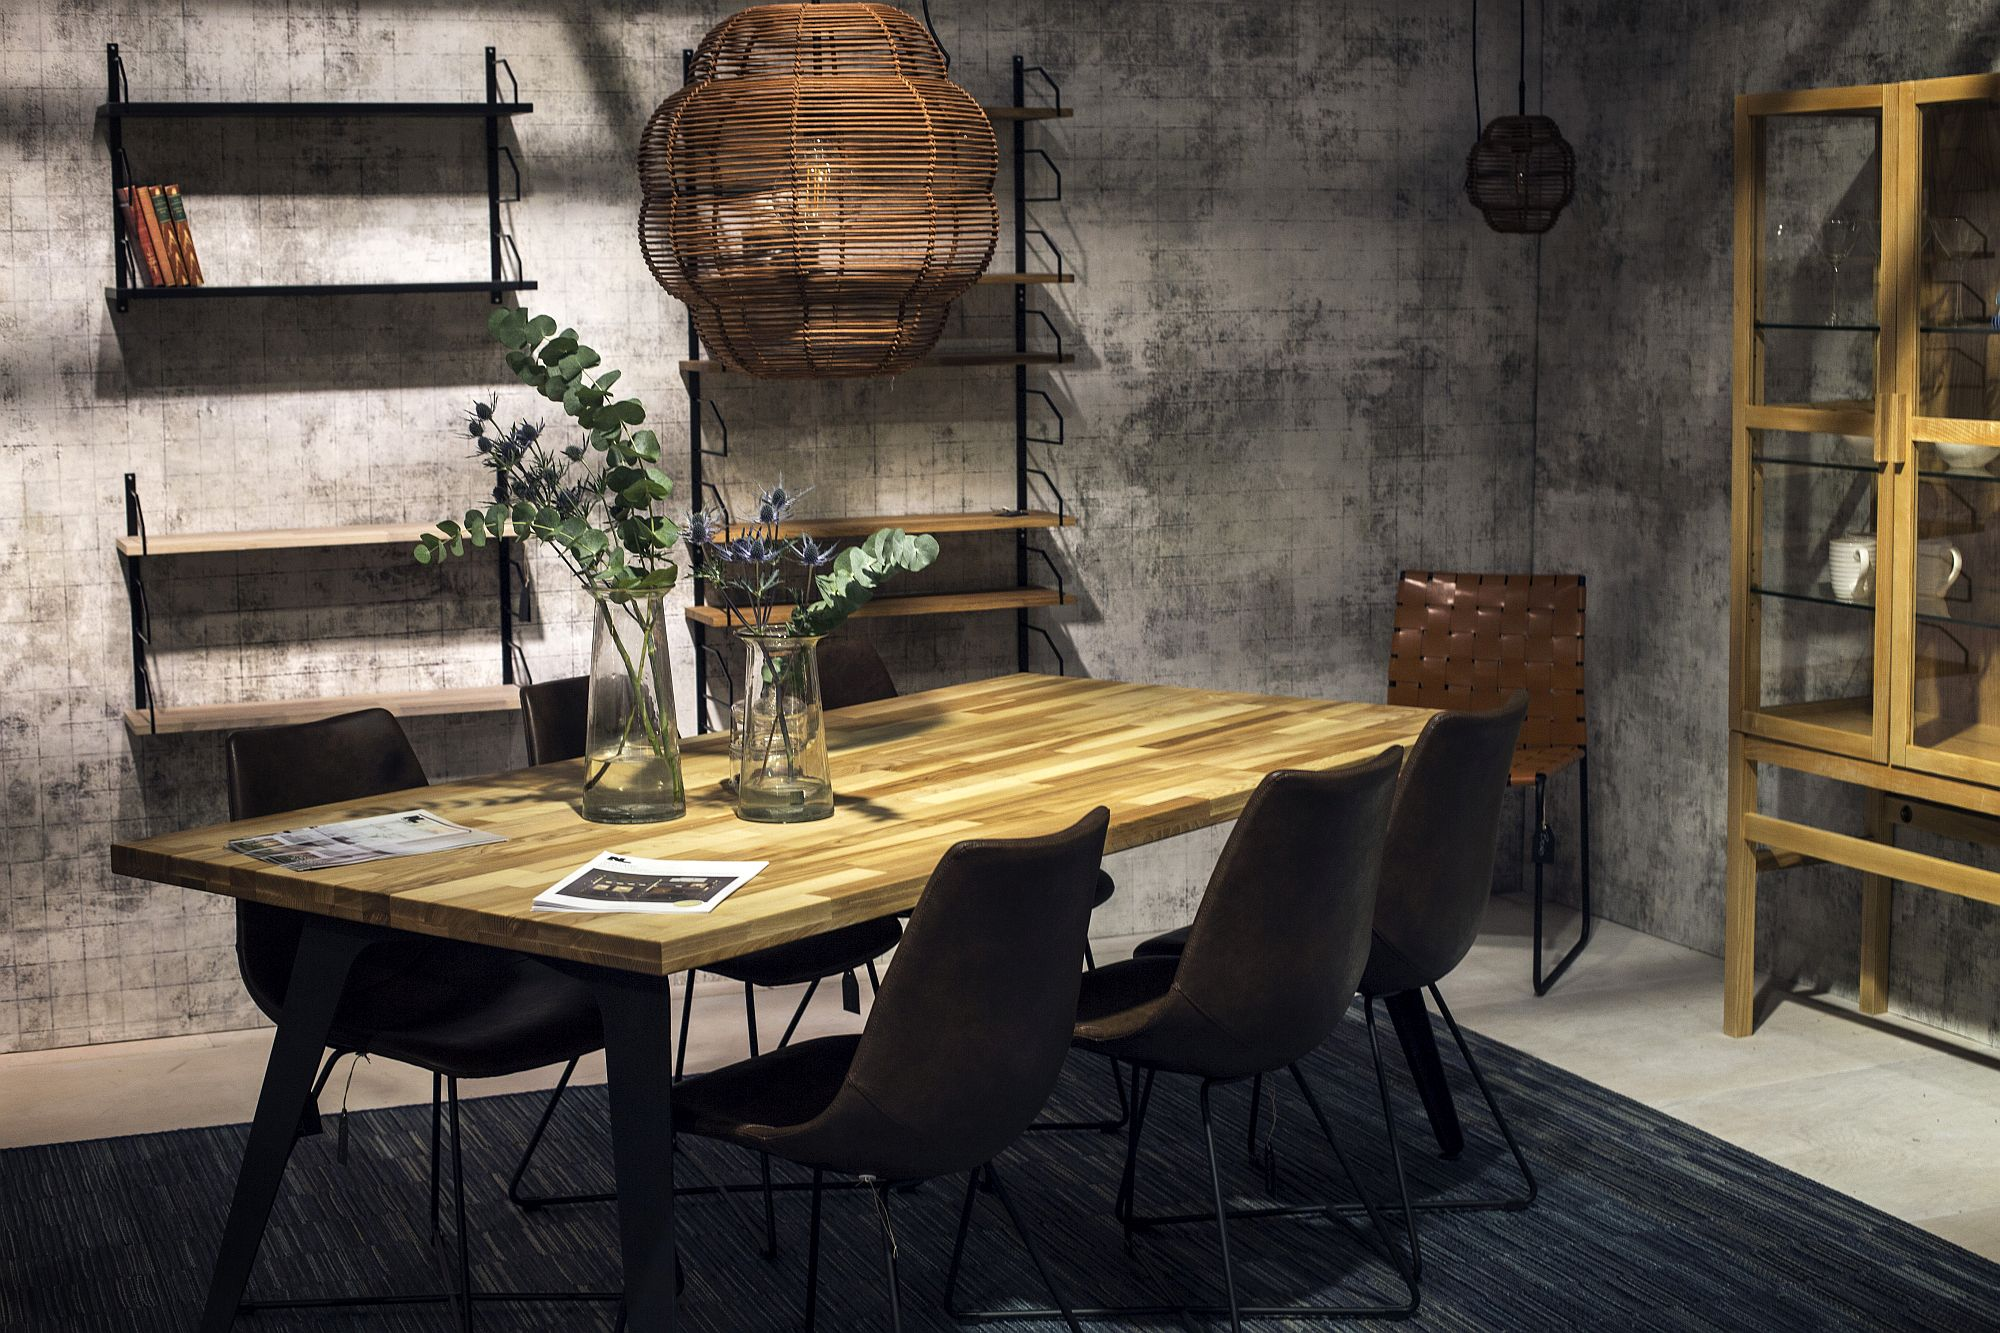 Gorgeous modern industrial shelving idea for the dining space